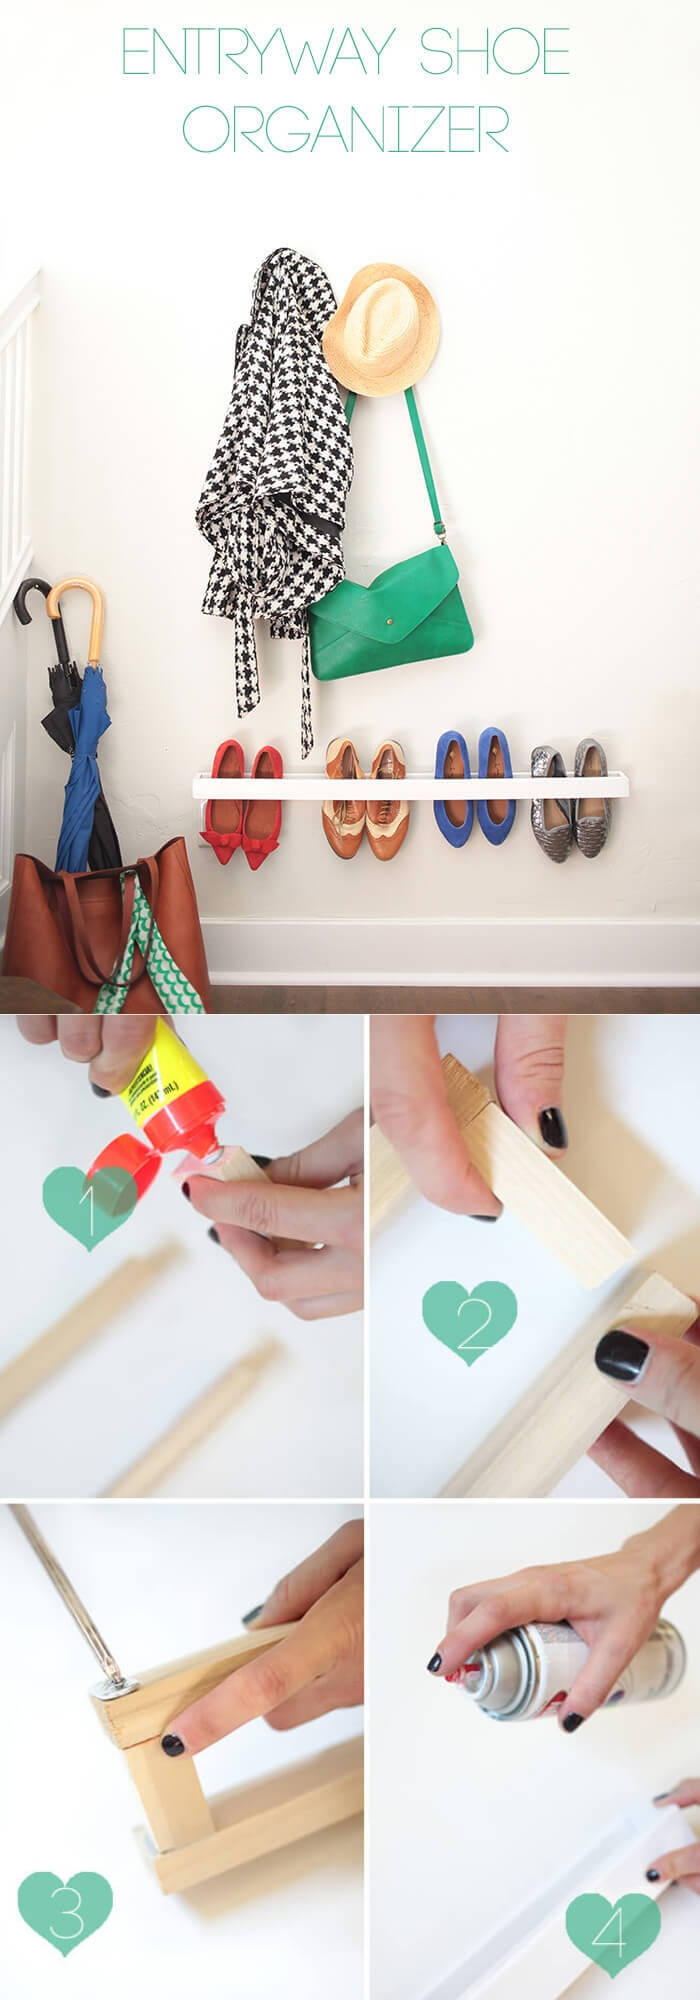 Mudroom/Entryway Shoe Organizer | Smart Shoe Storage Ideas & Designs For Any Zoom Size